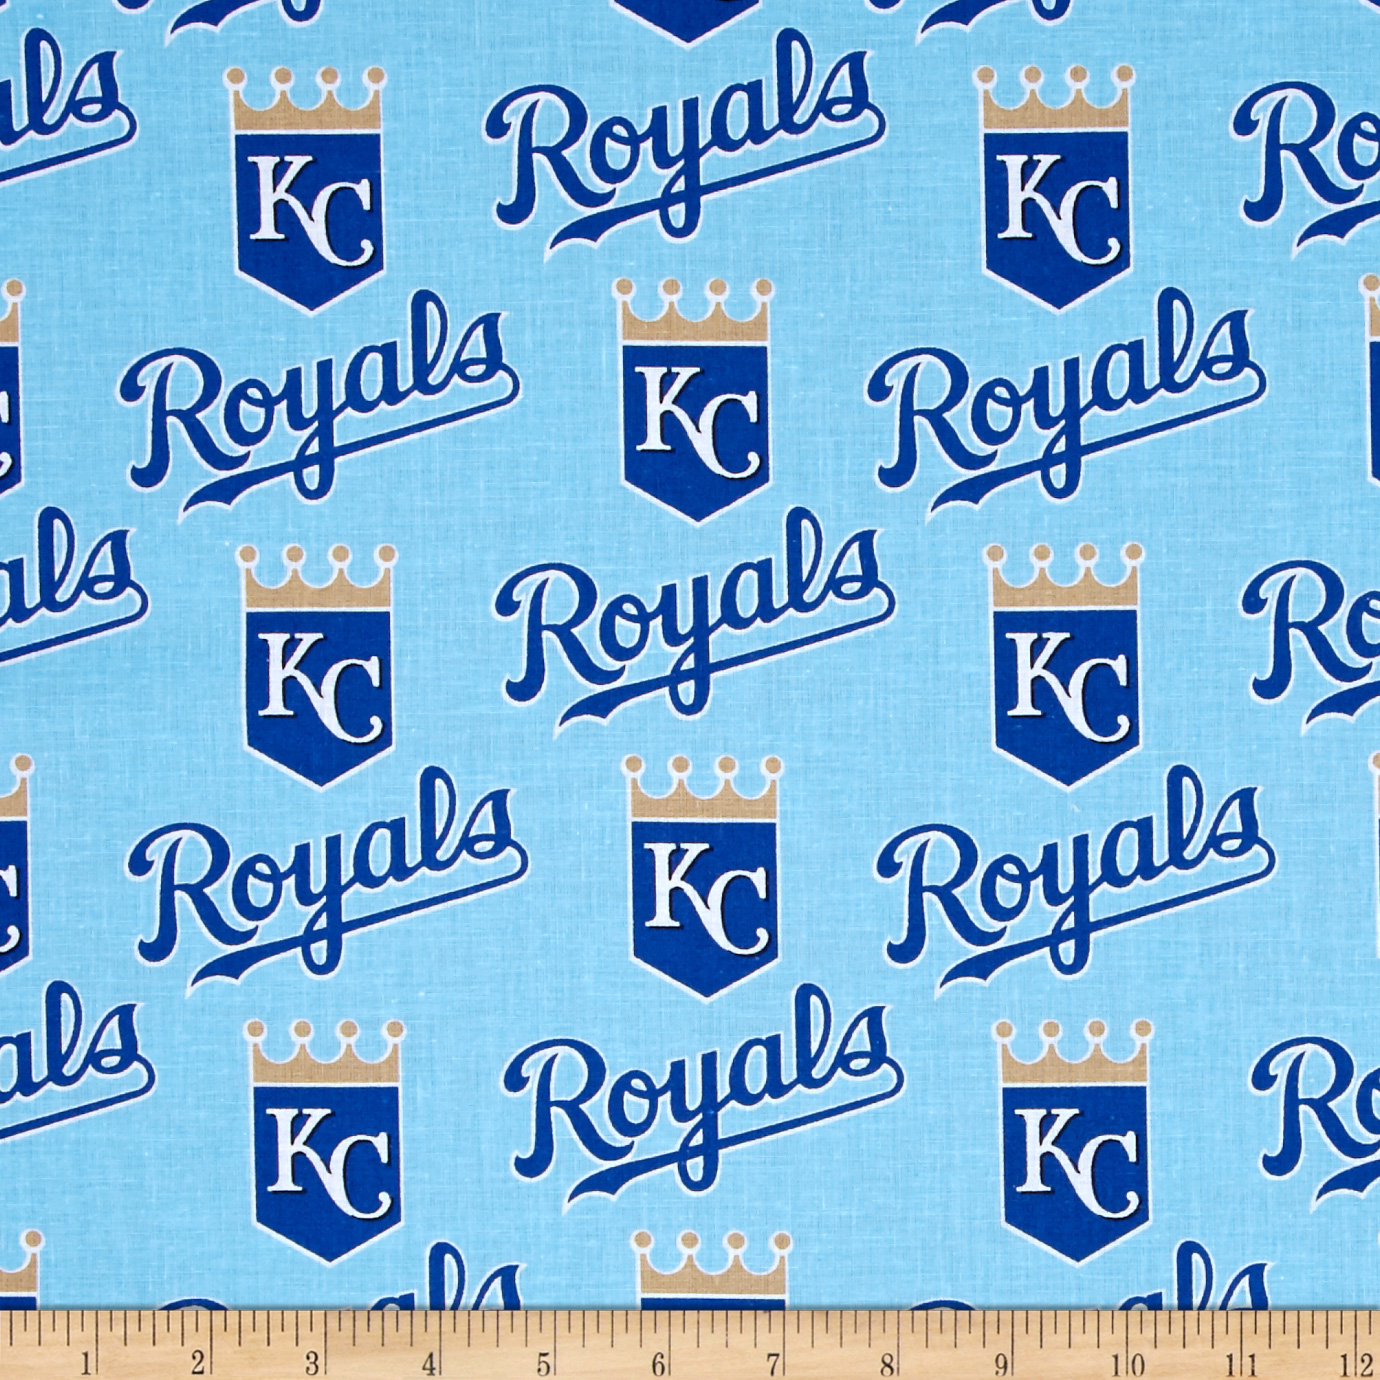 MLB Cotton Broadcloth Kansas City Royals Light Blue/Dark Blue Fabric by Fabric Traditions in USA